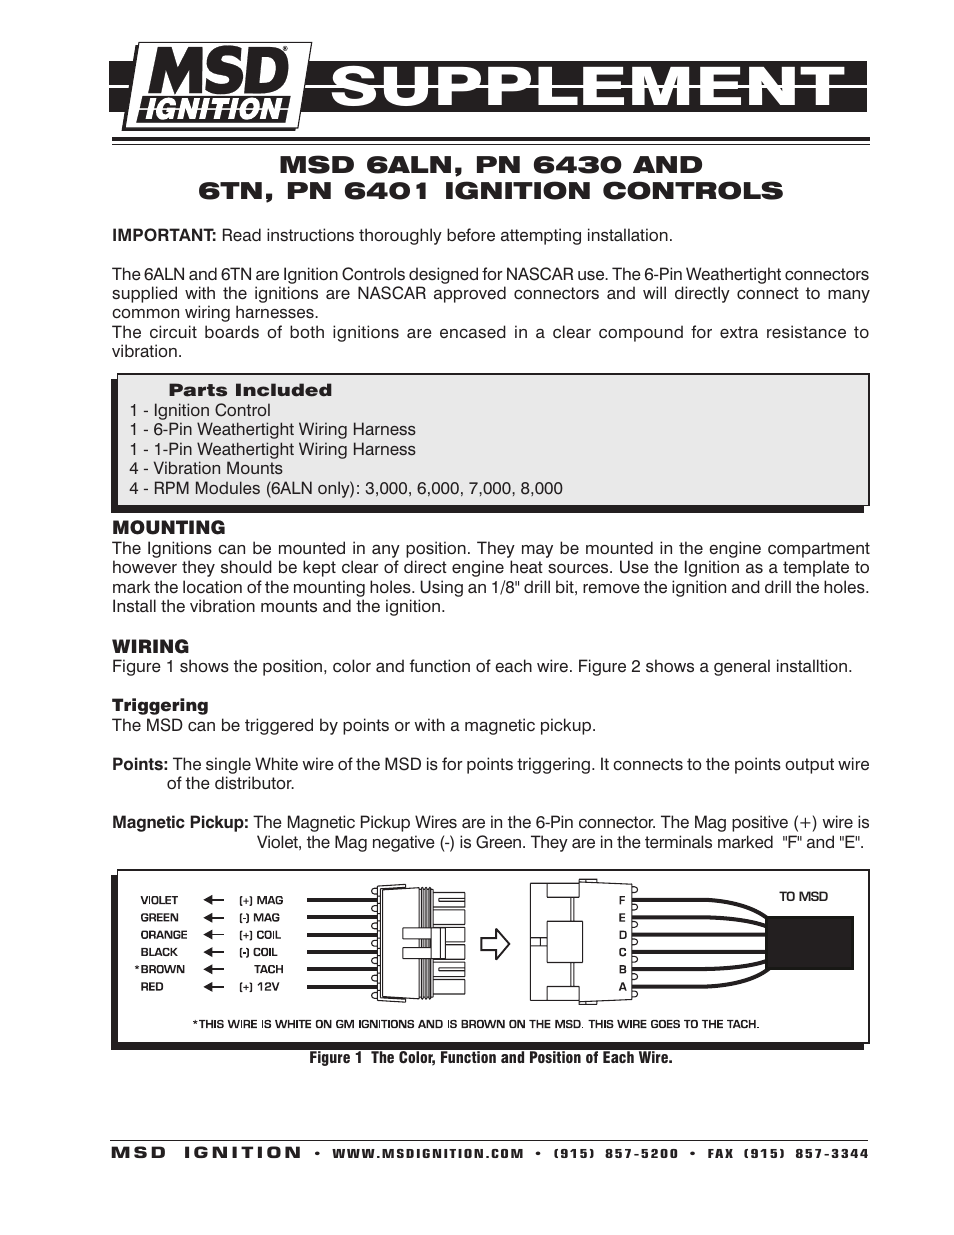 msd 6430 6aln ignition control supplement page1 tg66m3170c00 wiring diagram,m \u2022 indy500 co  at readyjetset.co